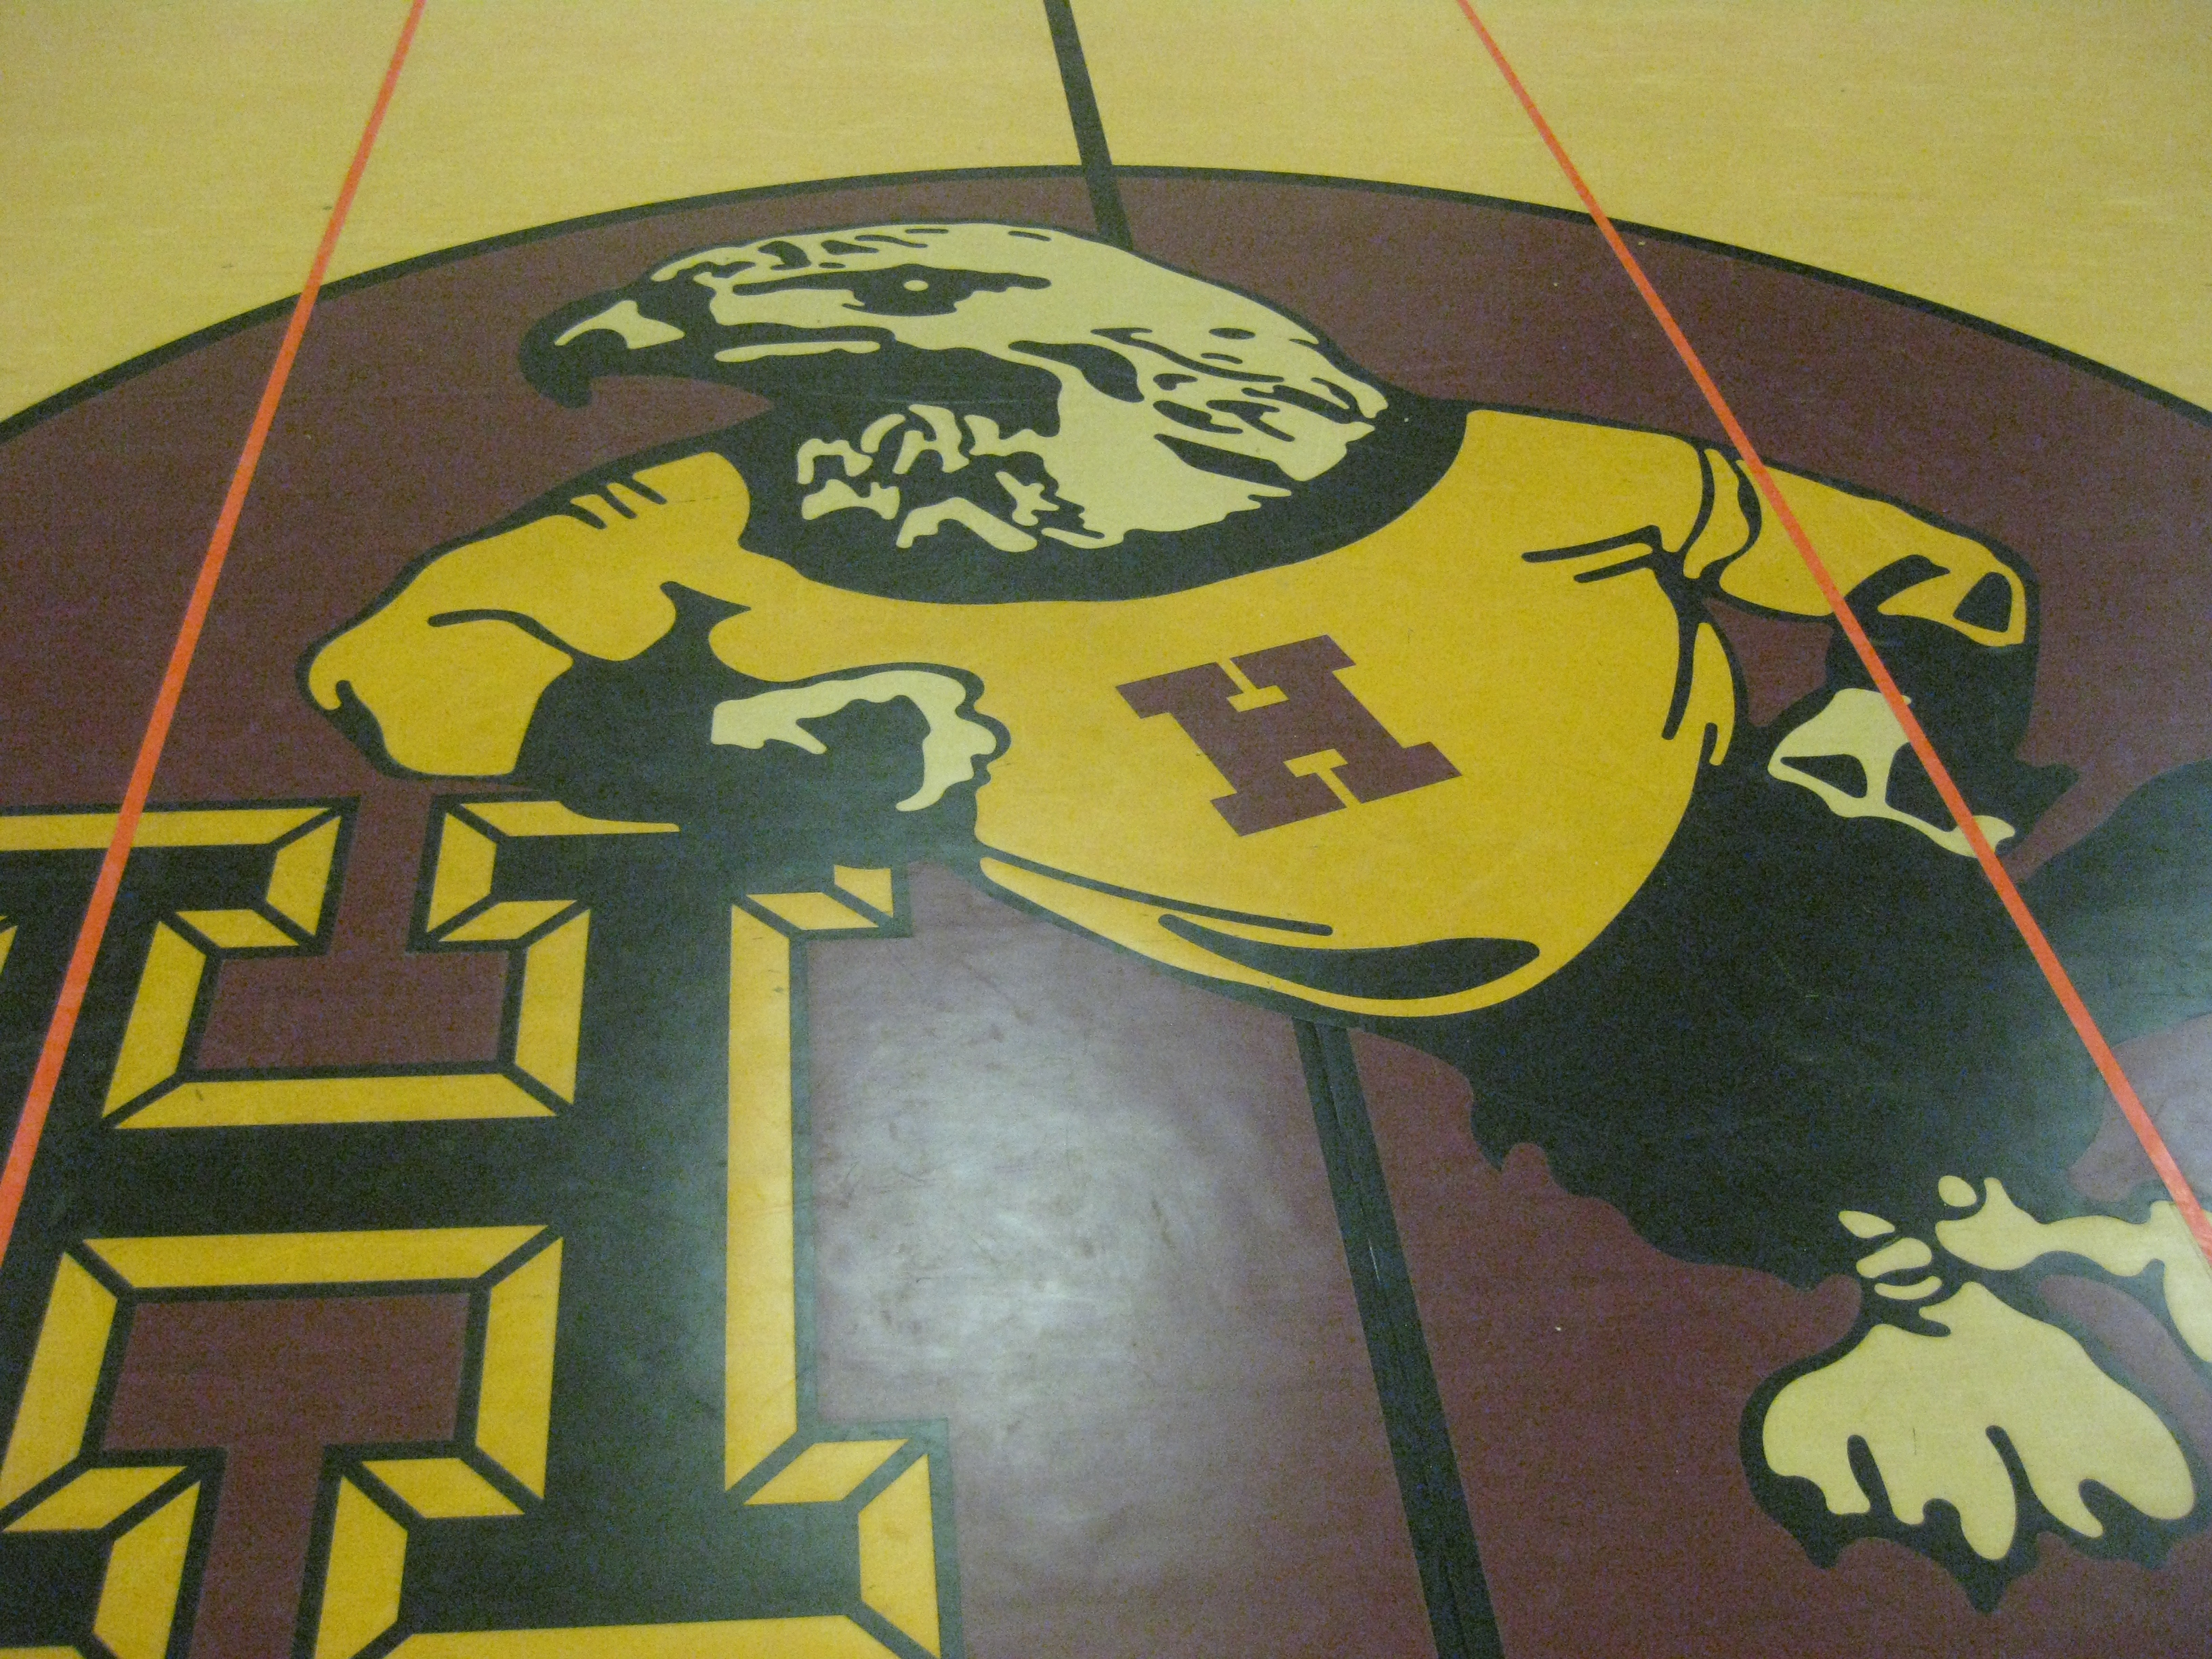 Hoover Hawks logo on gymnasium floor